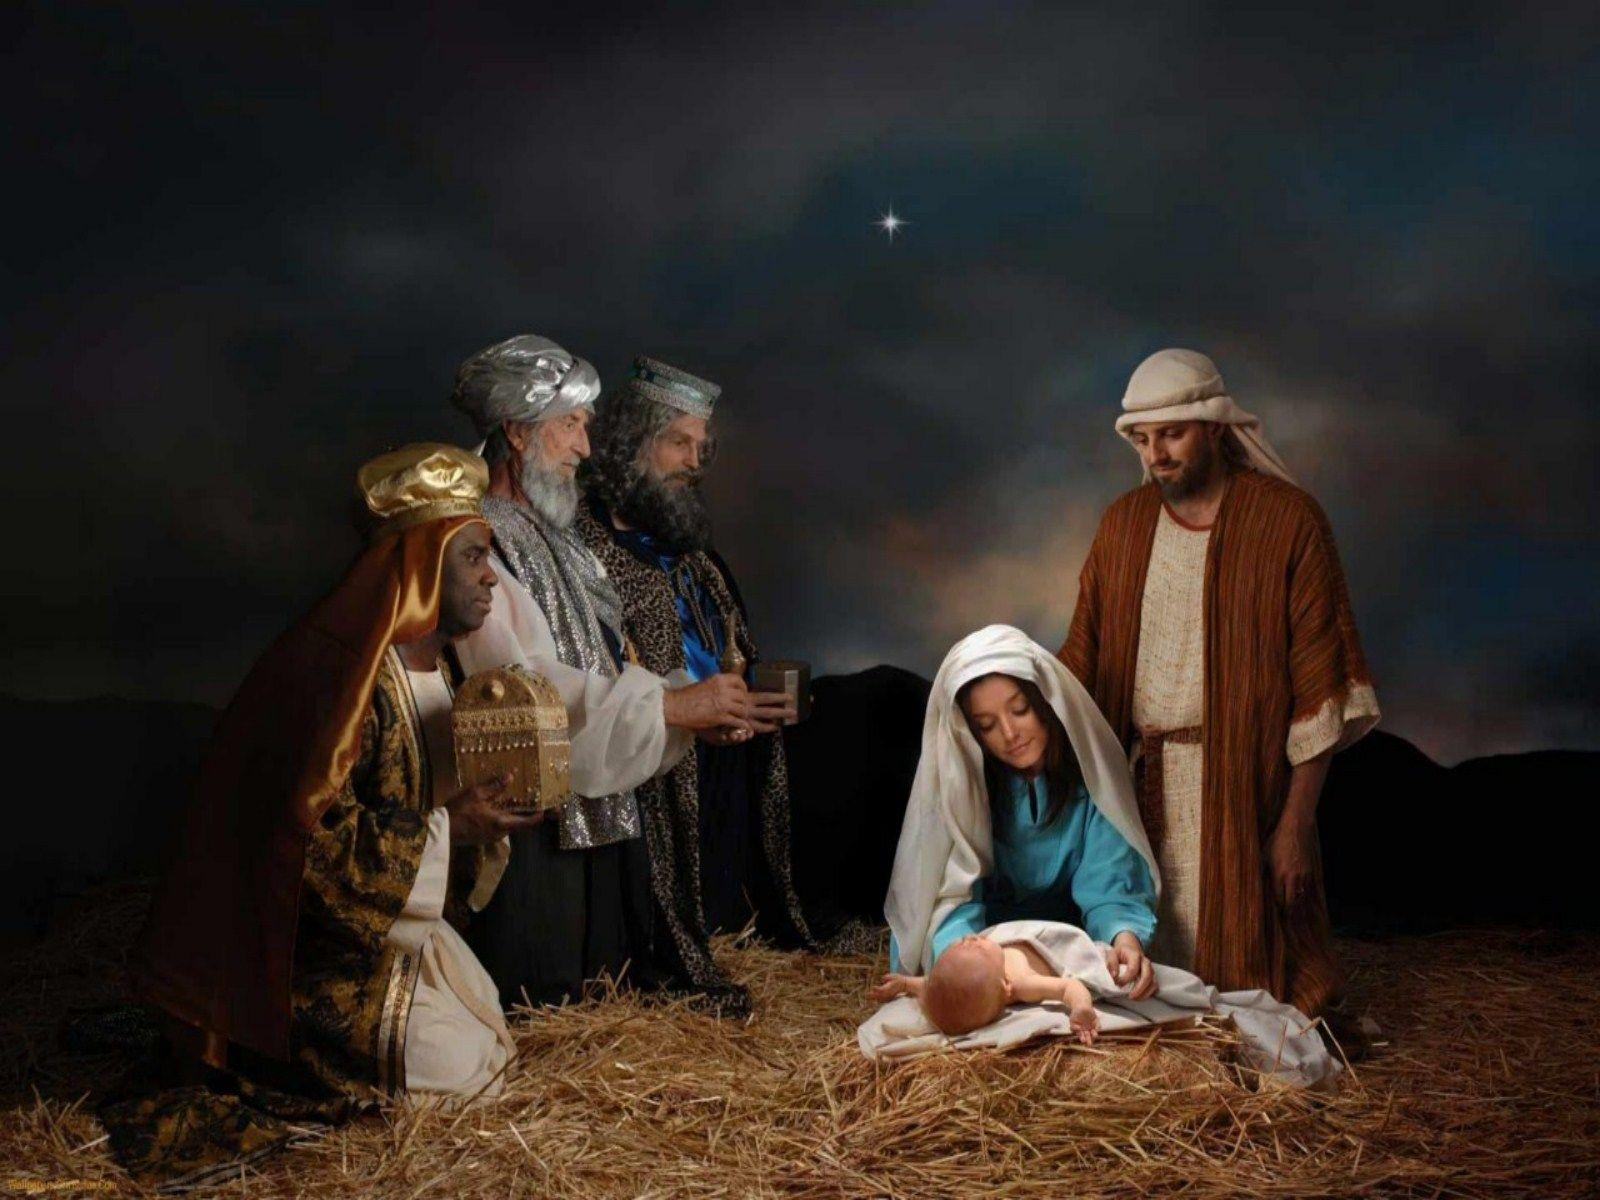 Free Pictures of Nativity Scenes